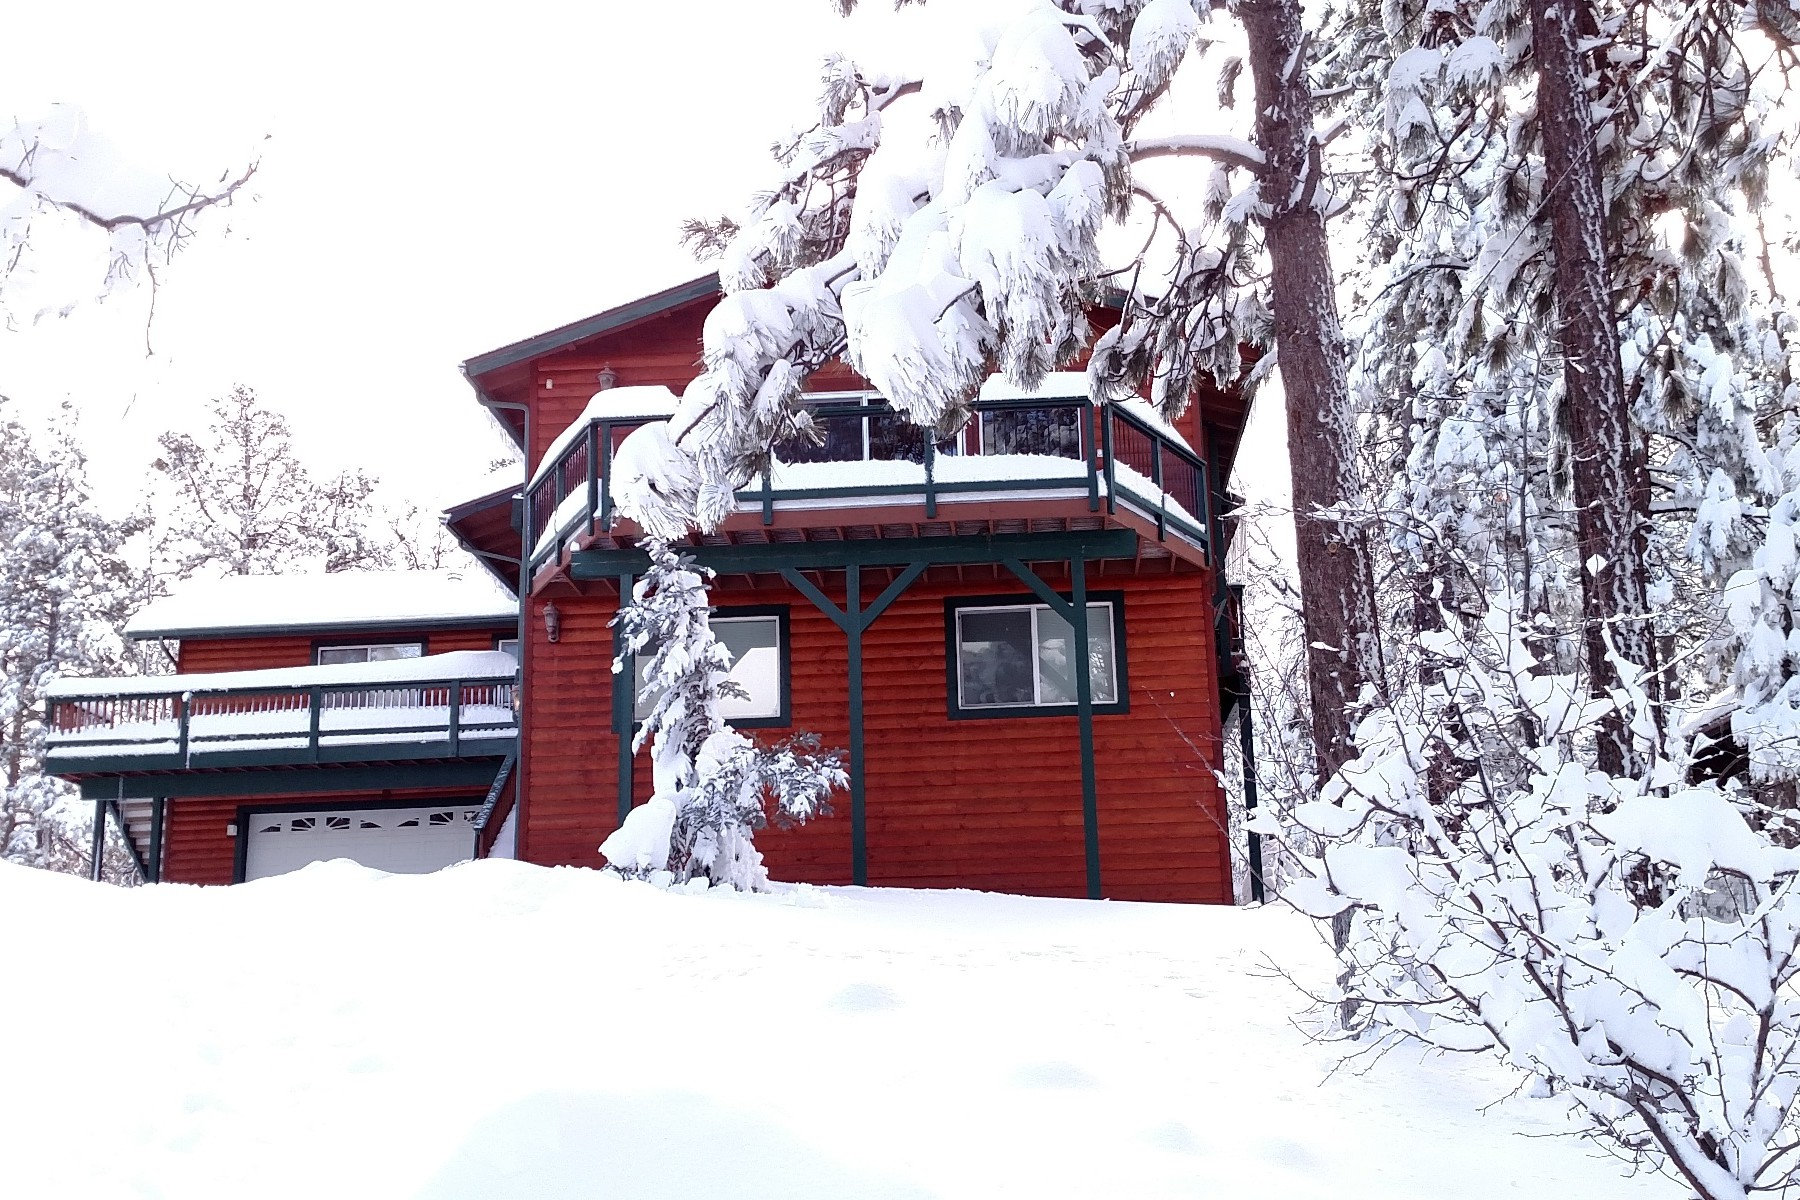 Single Family Home for Sale at 1100 Johnny Way Big Bear City, California 92314 United States